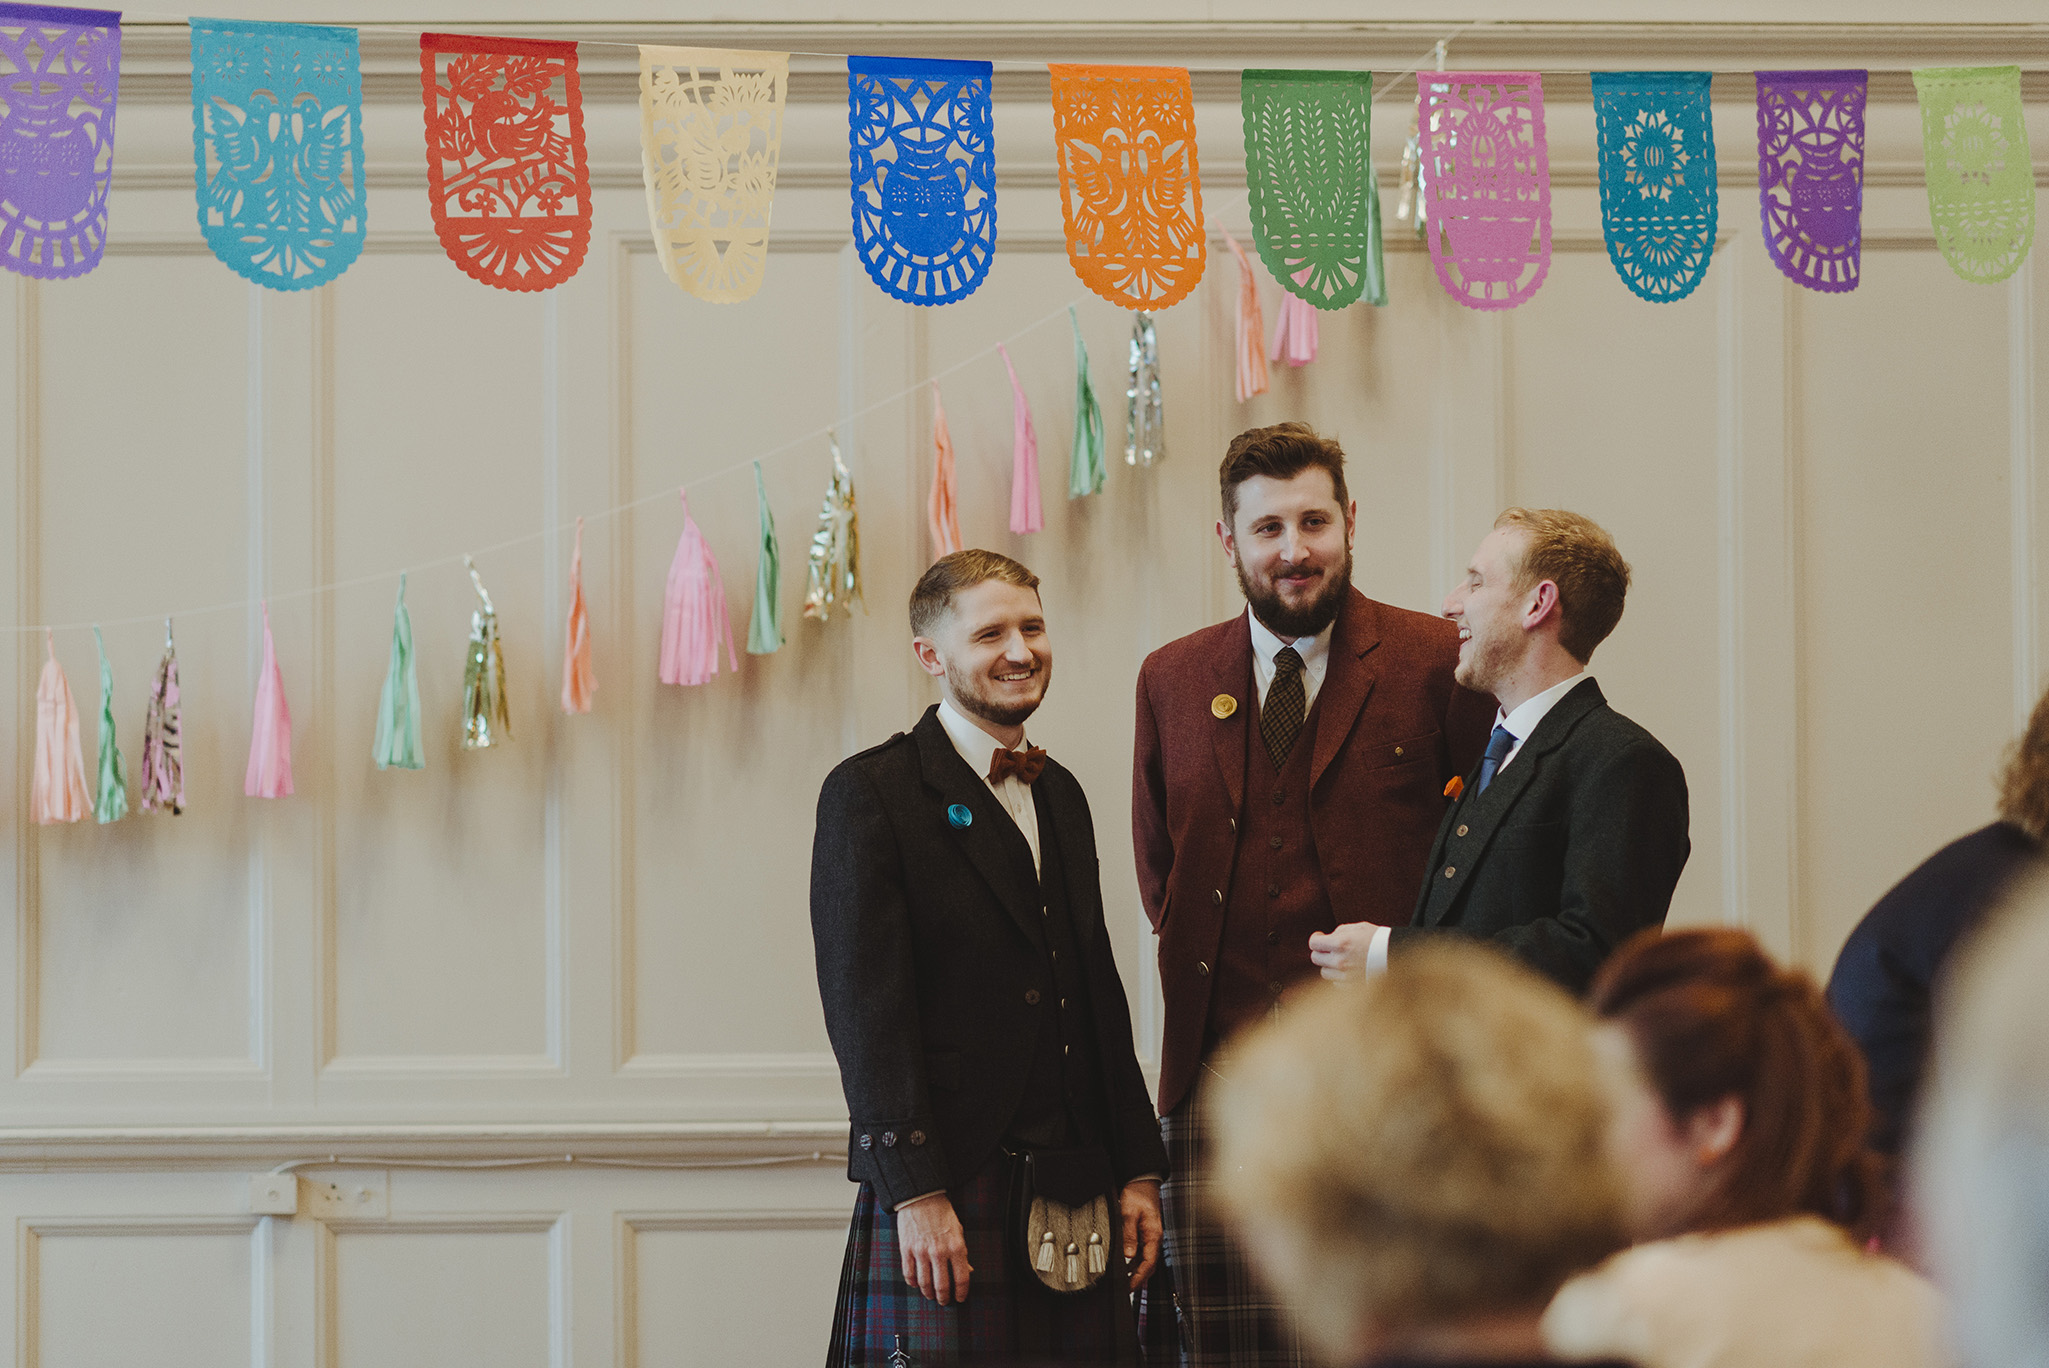 Summerhall and The Biscuit Factory Wedding 26.jpg